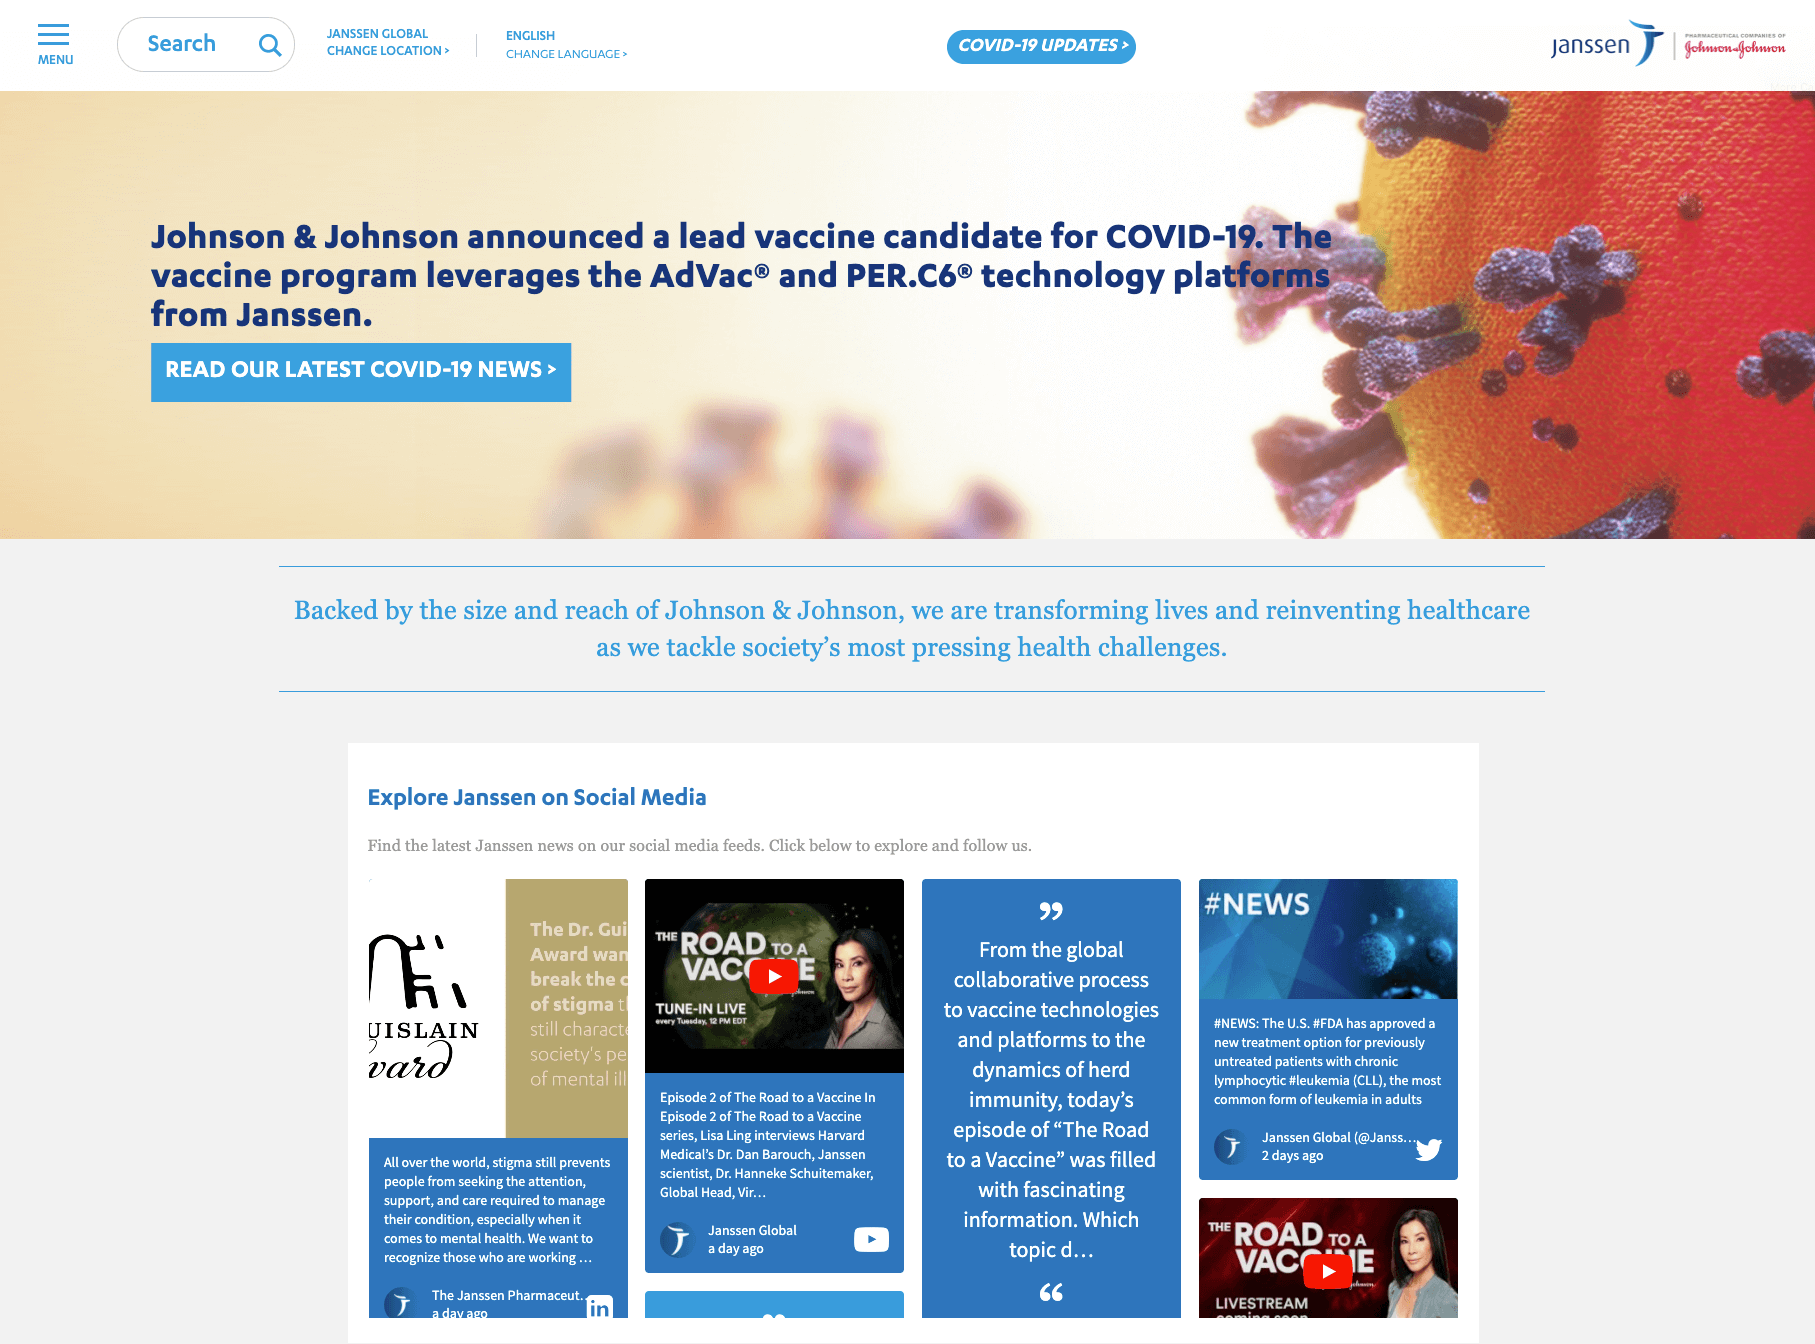 """Screenshot of the Janssen website with the latest news about a potential COVID-19 vaccine at the top of the page, and the social wall embedded right underneath that. The social wall carries the heading """"Explore Janssen on Social Media"""" and shows various tweets and Facebook posts by Janssen."""